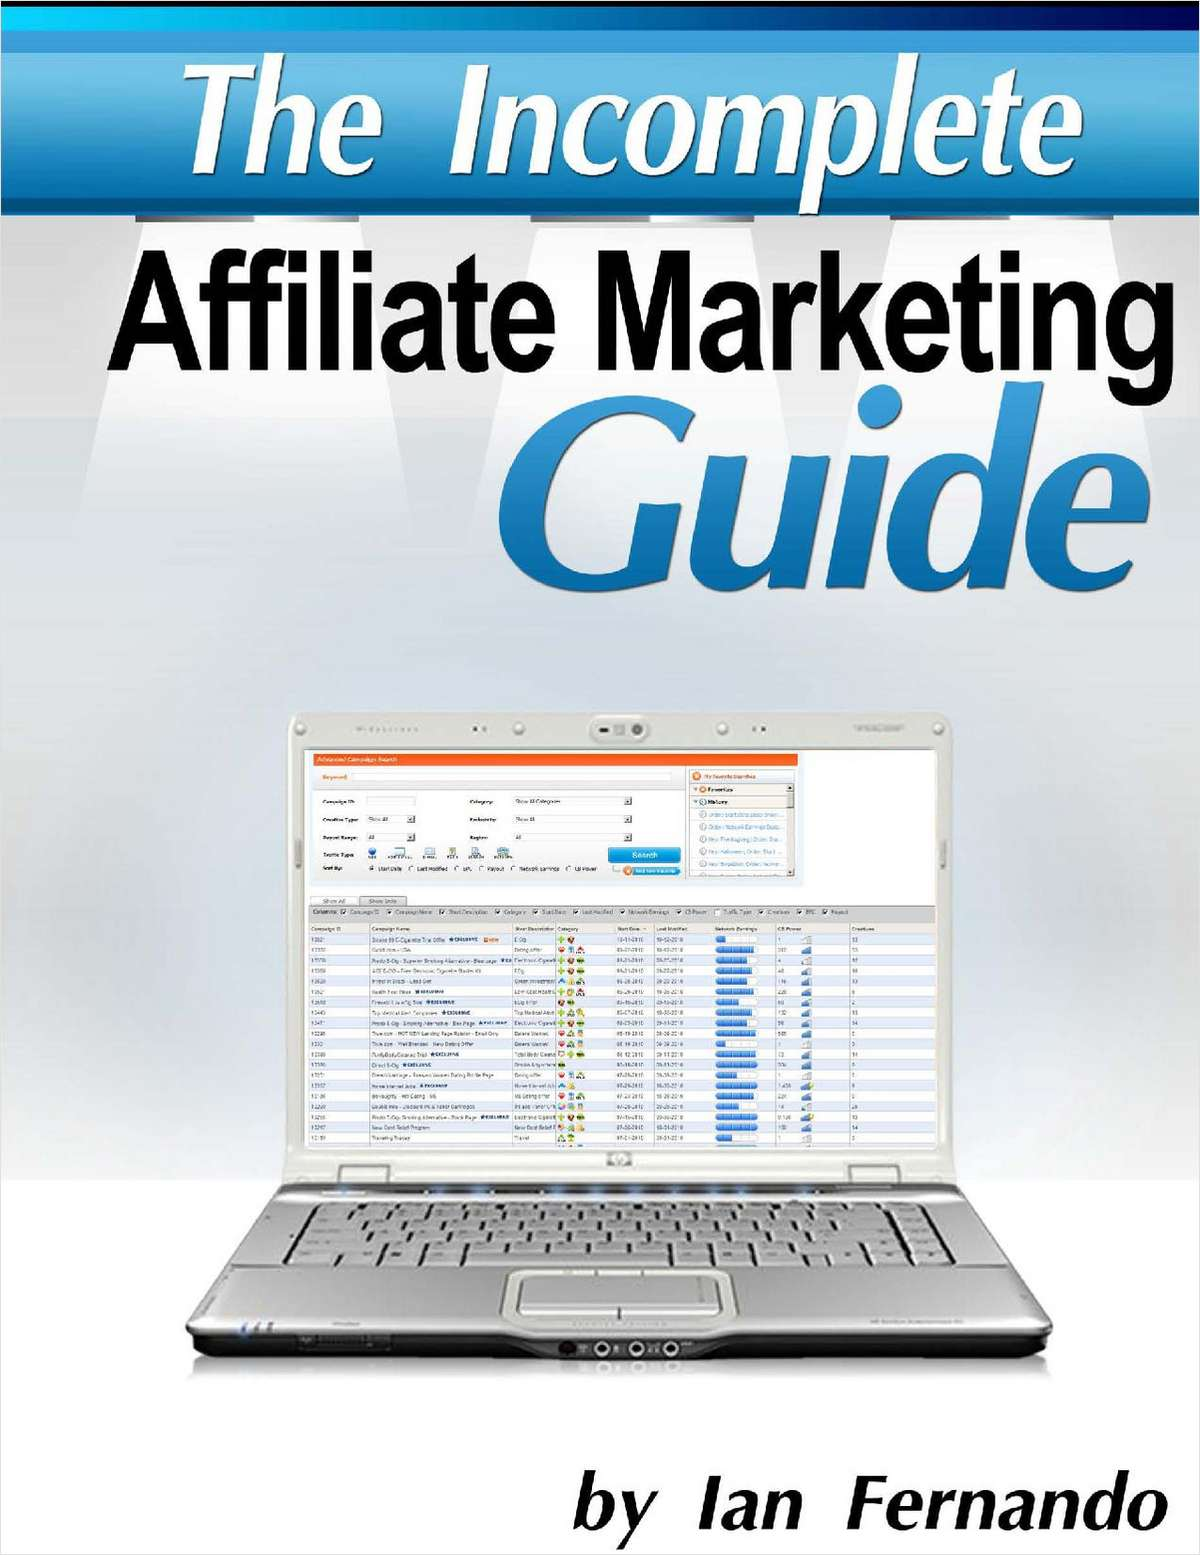 The Incomplete Affiliate Marketing Guide